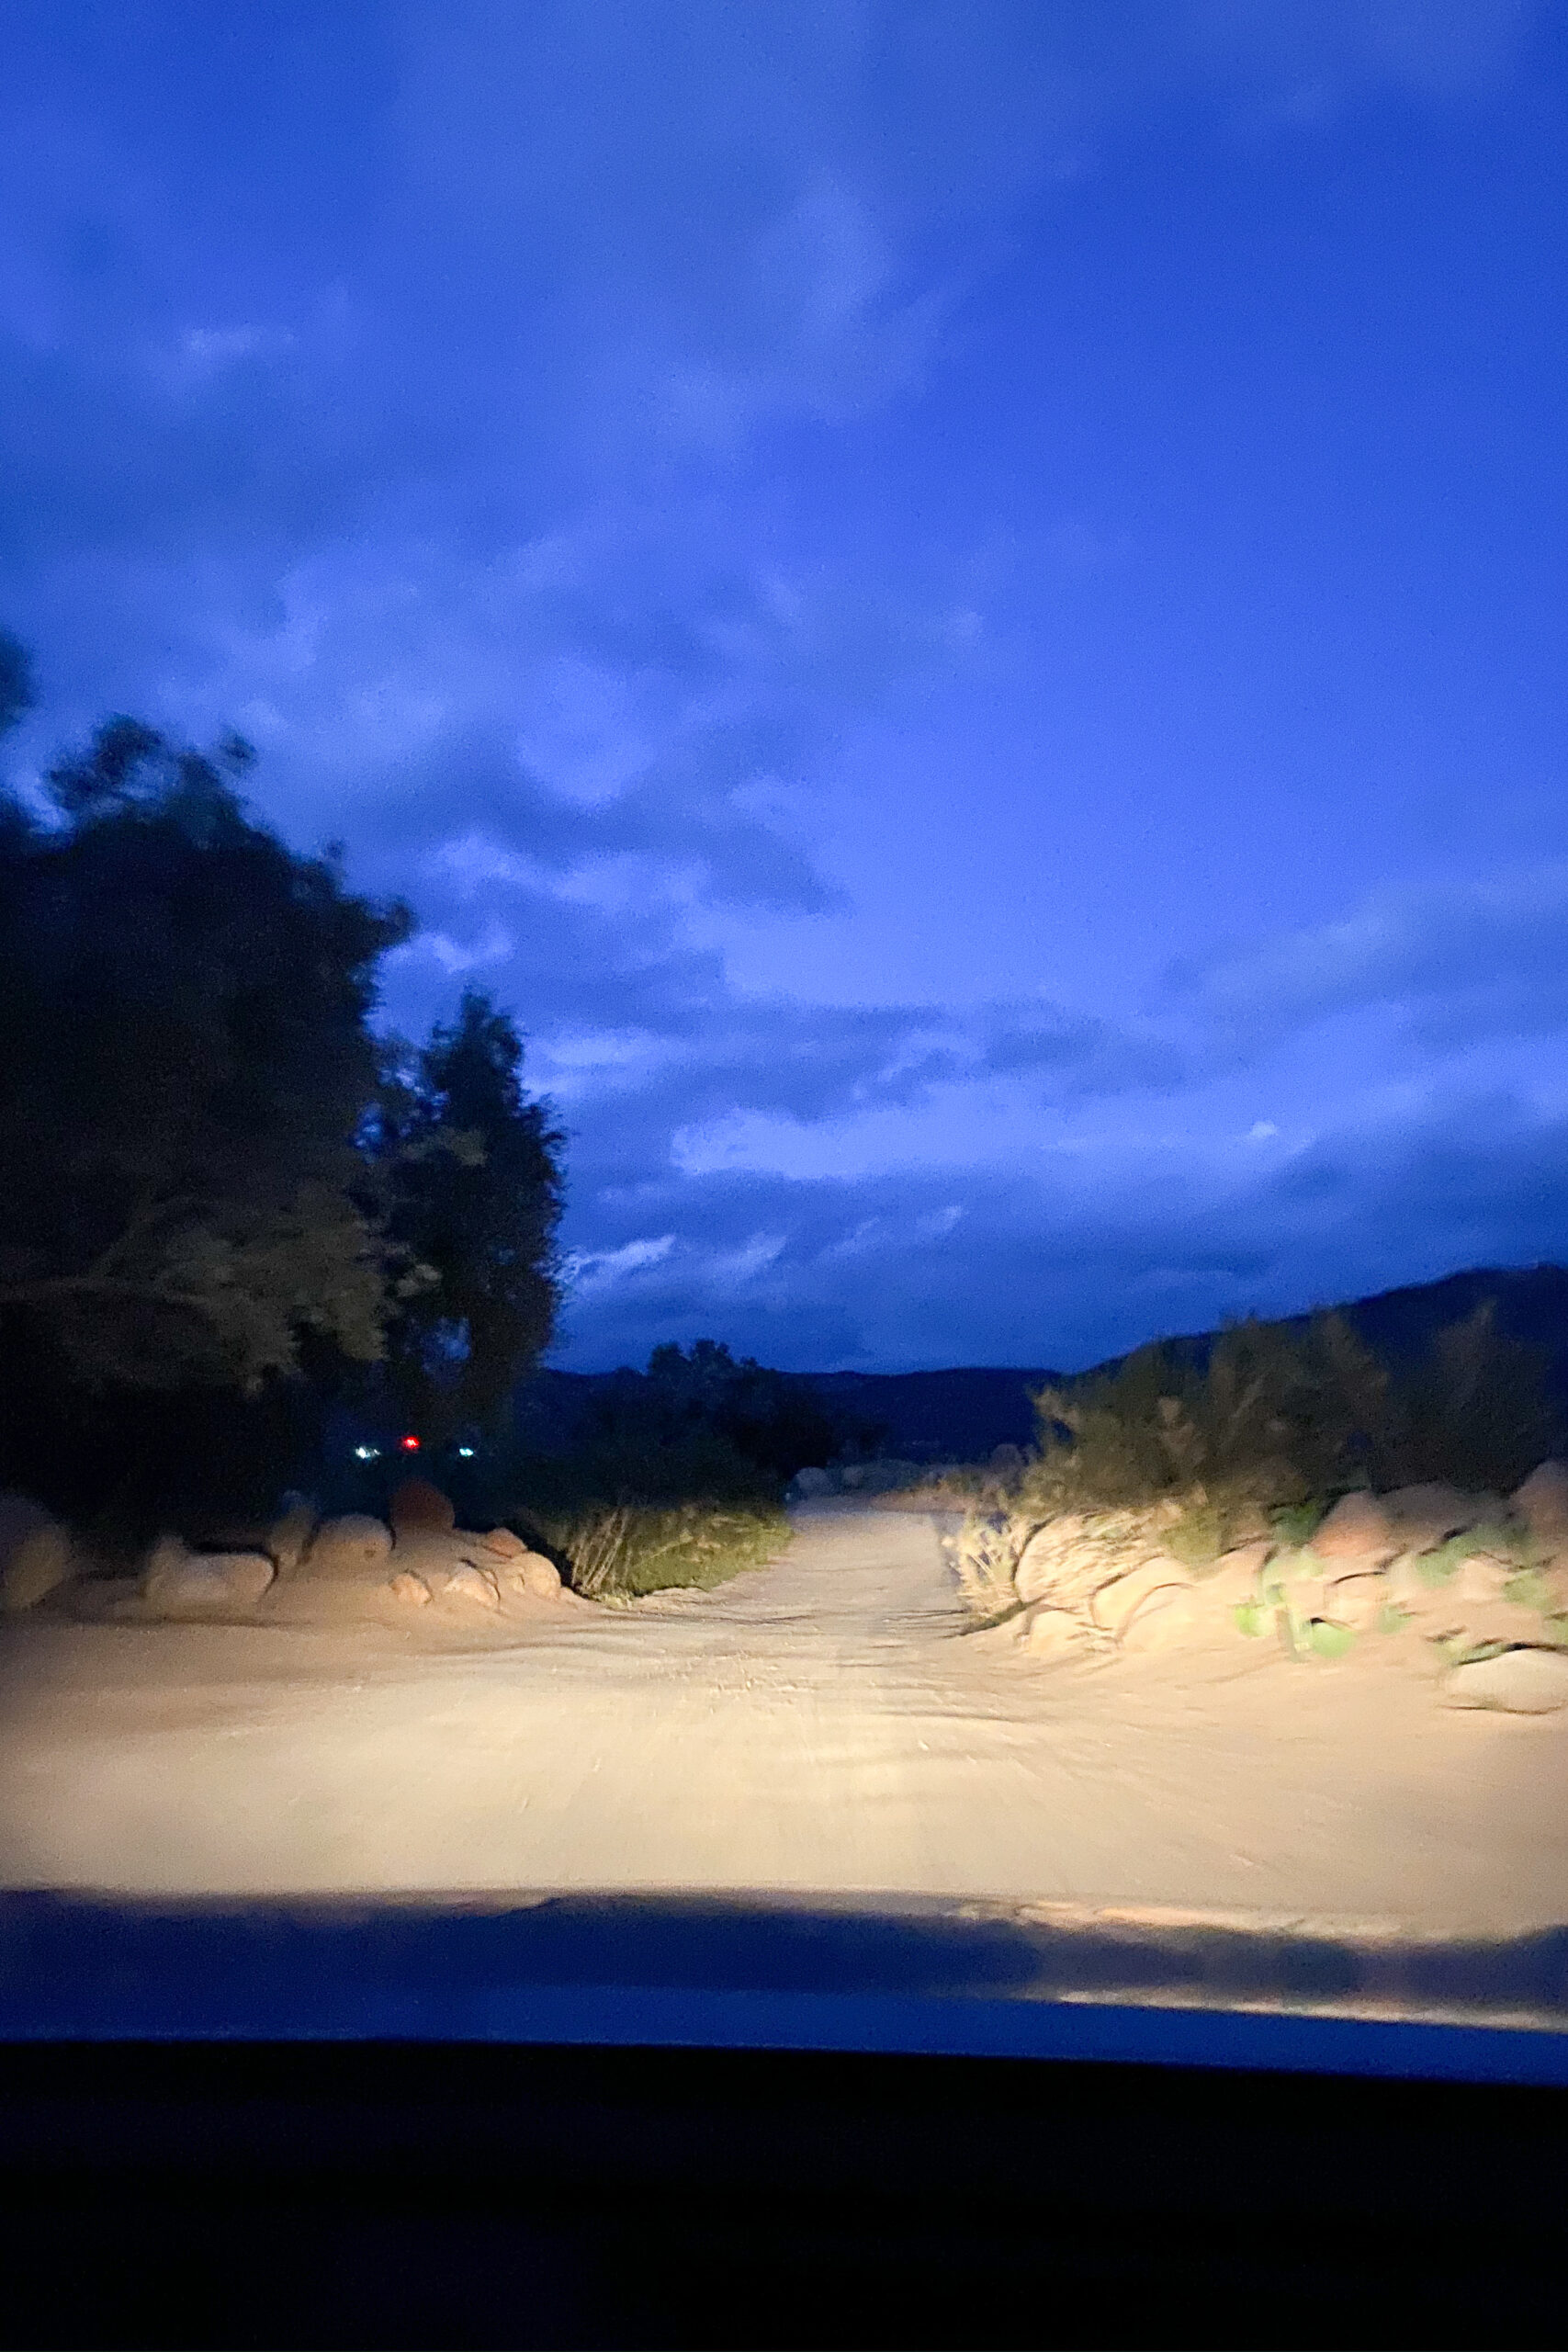 driving into our dinner at Fauna